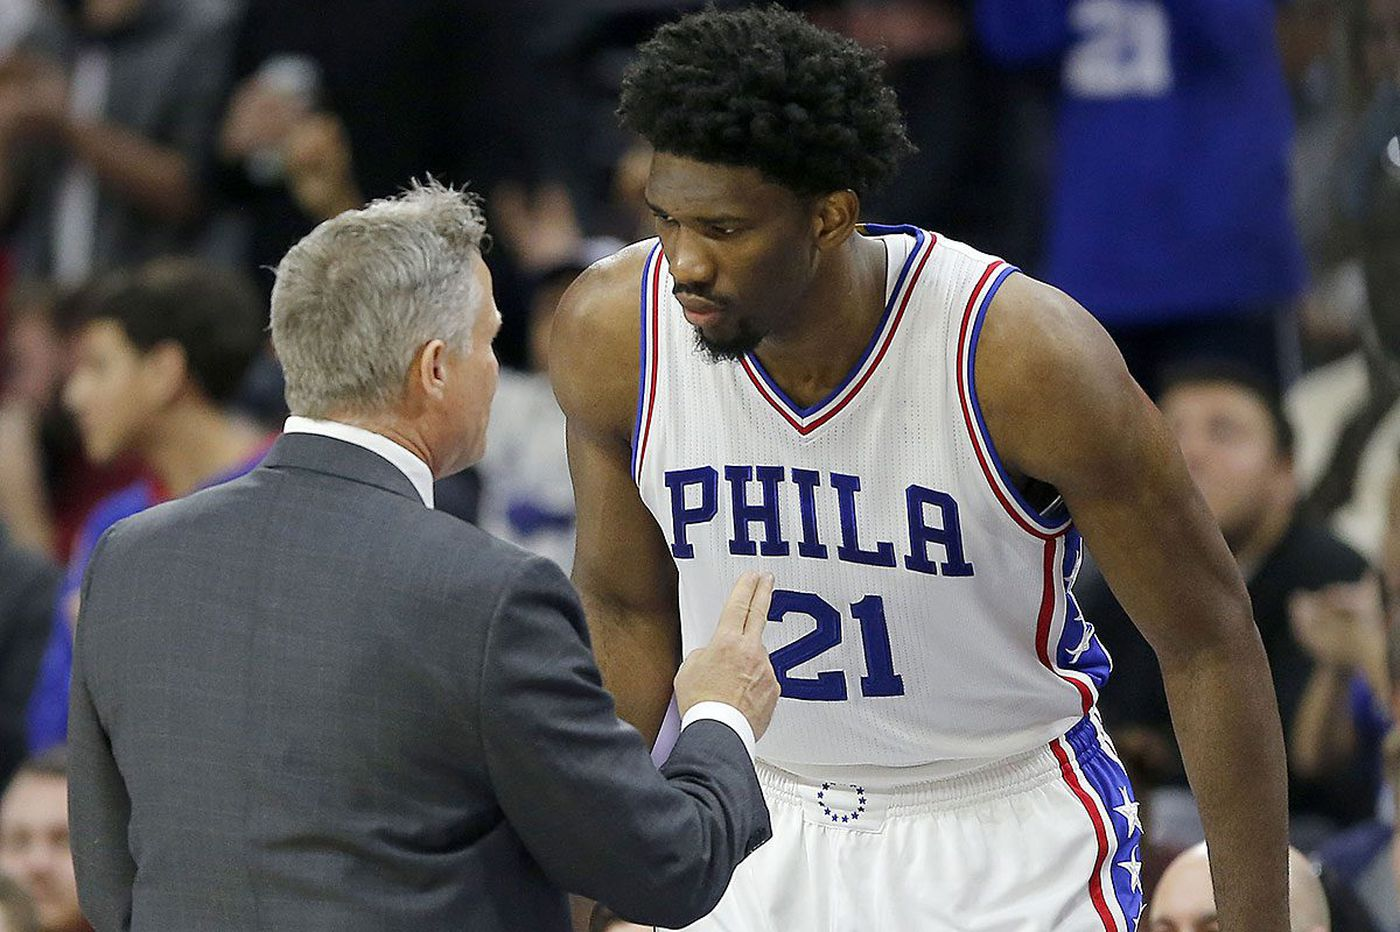 Butler responds to 76ers star Joel Embiid's comments